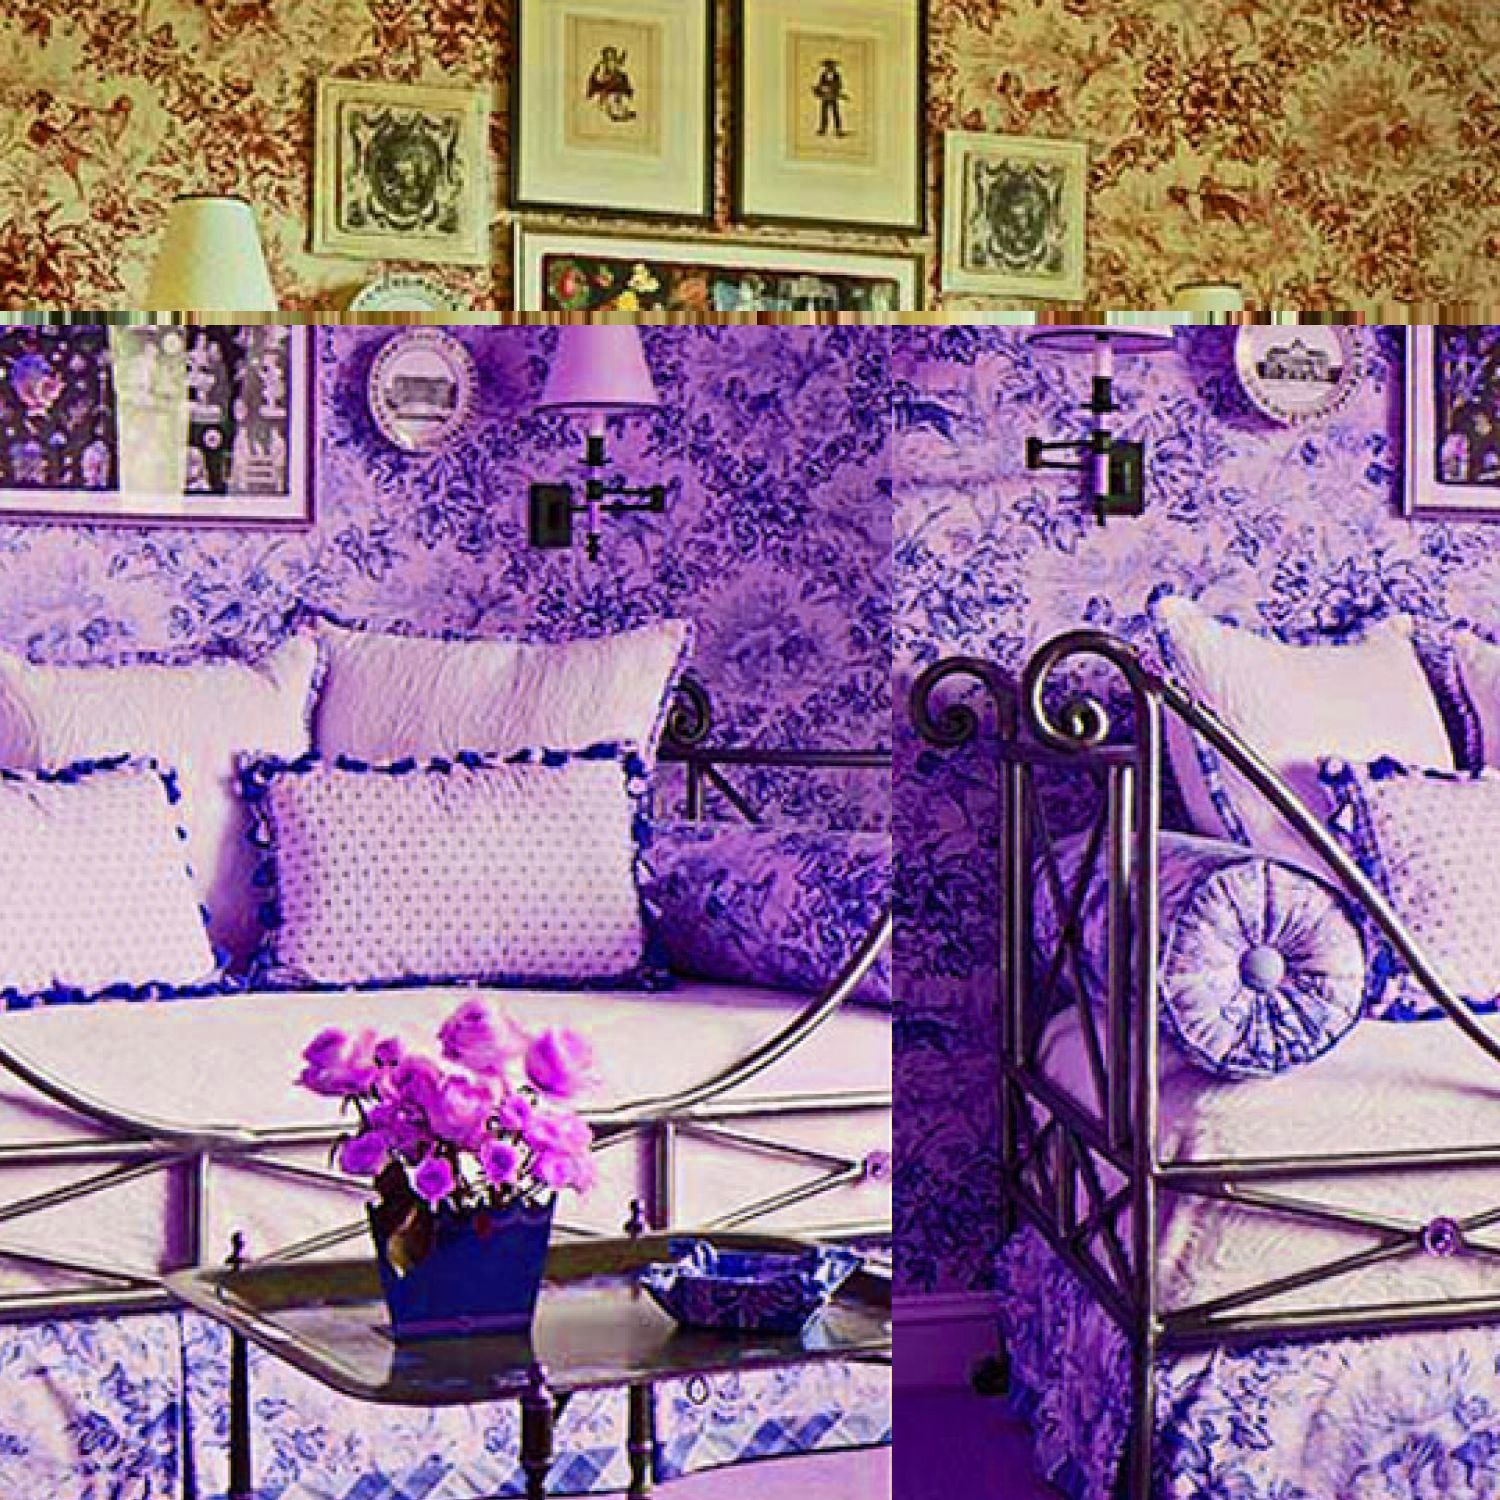 Decorating Ideas: Toile Fabric  Toile de jouy fabric originated in France in the 1760s. The original patterns usually depicted pastoral scenes; today there are many pattern choices and colors available. Here are dozens of ways to use toile to enliven a room, including decorating tips.